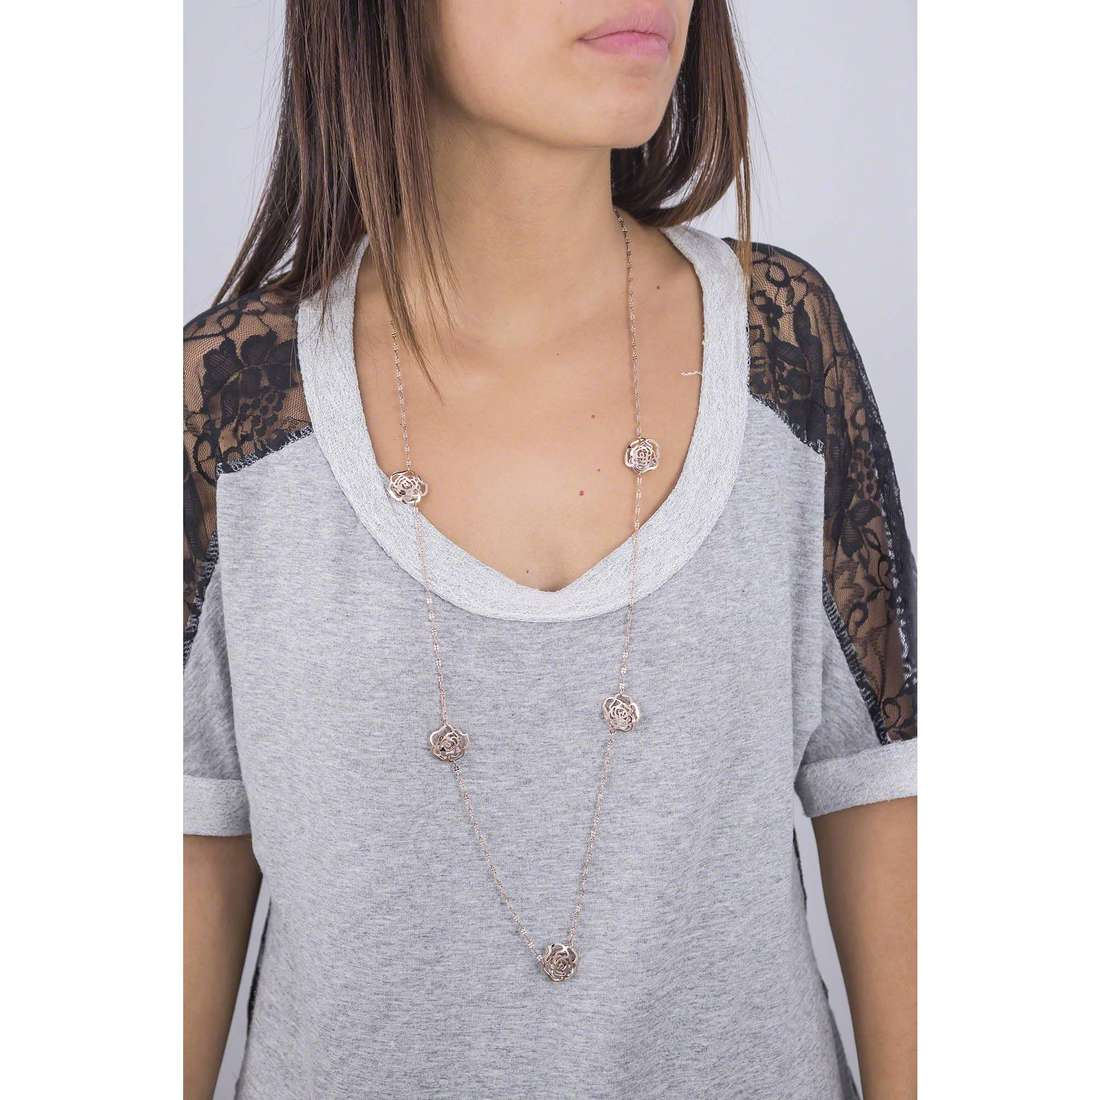 Marlù necklaces Chic woman 4CO0099R indosso